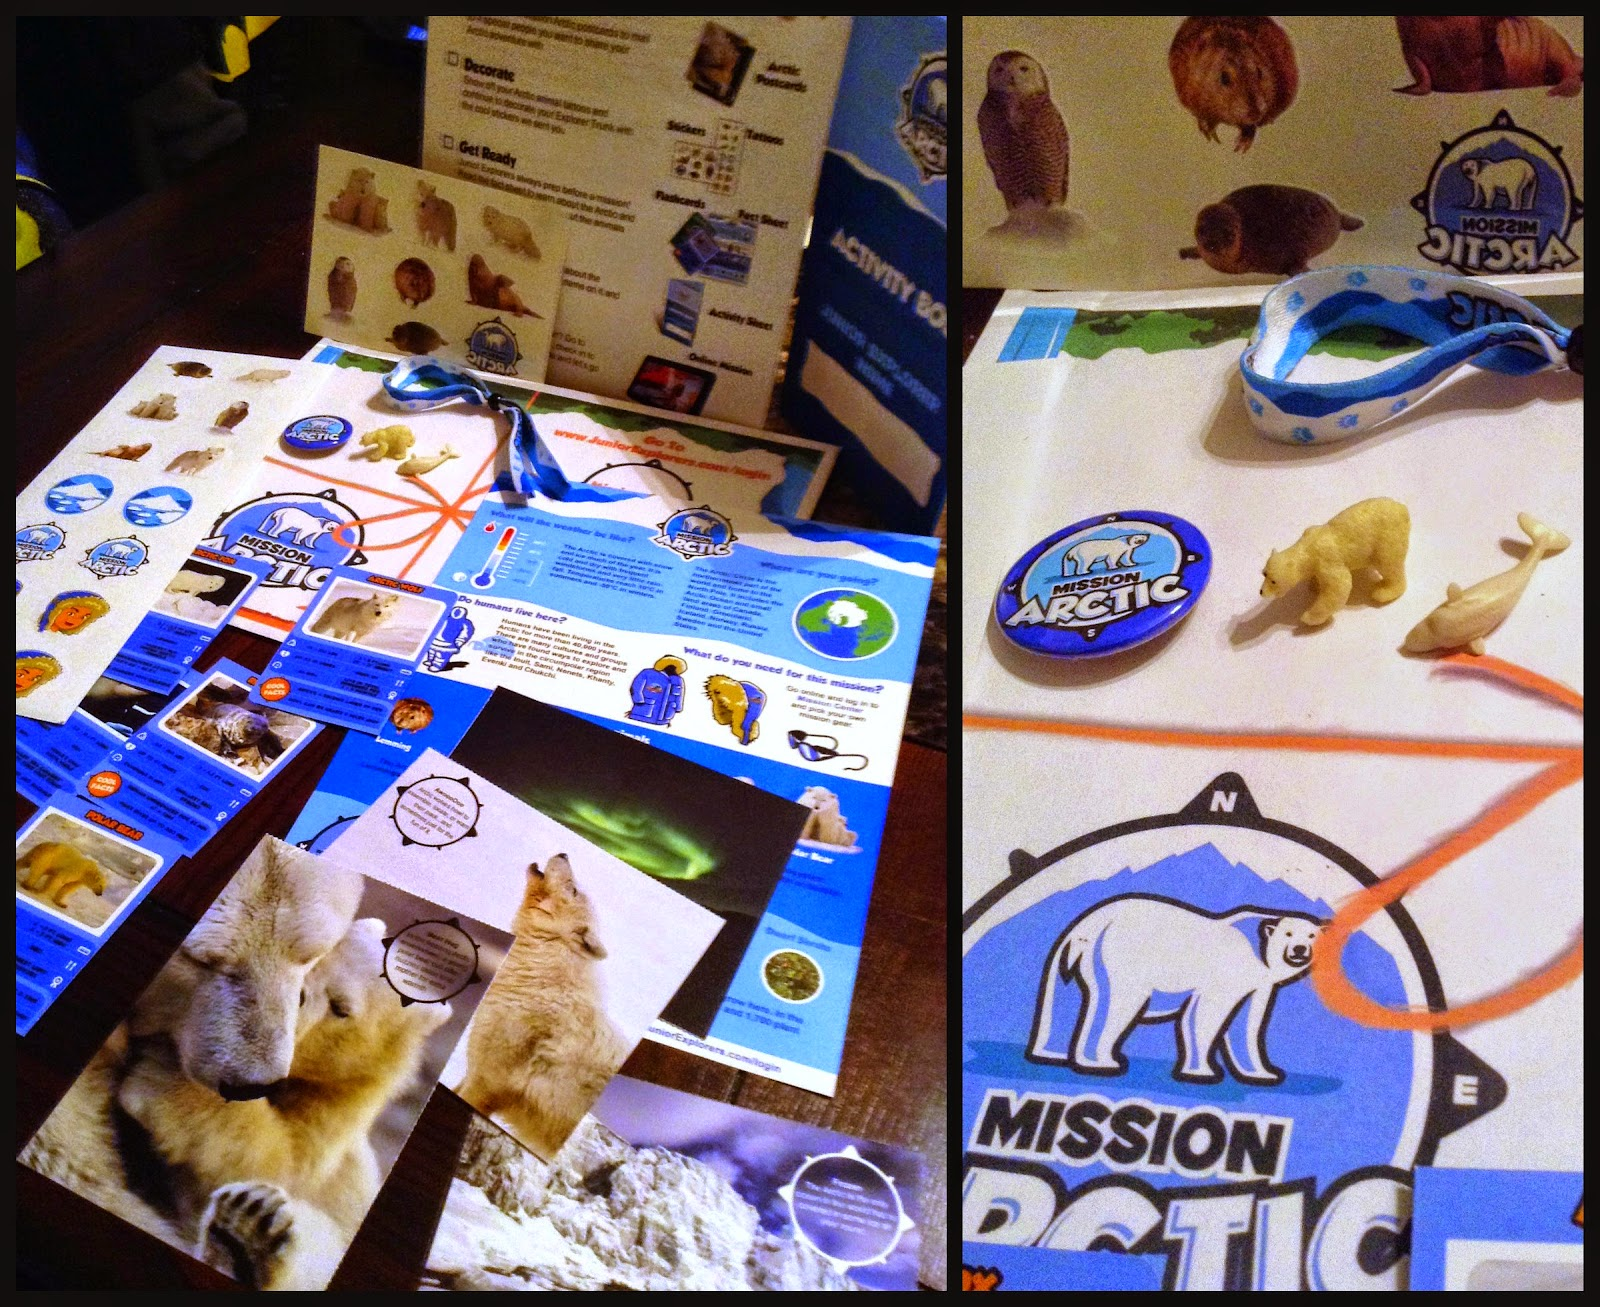 The Arctic Mission Kit from @JuniorExplorers